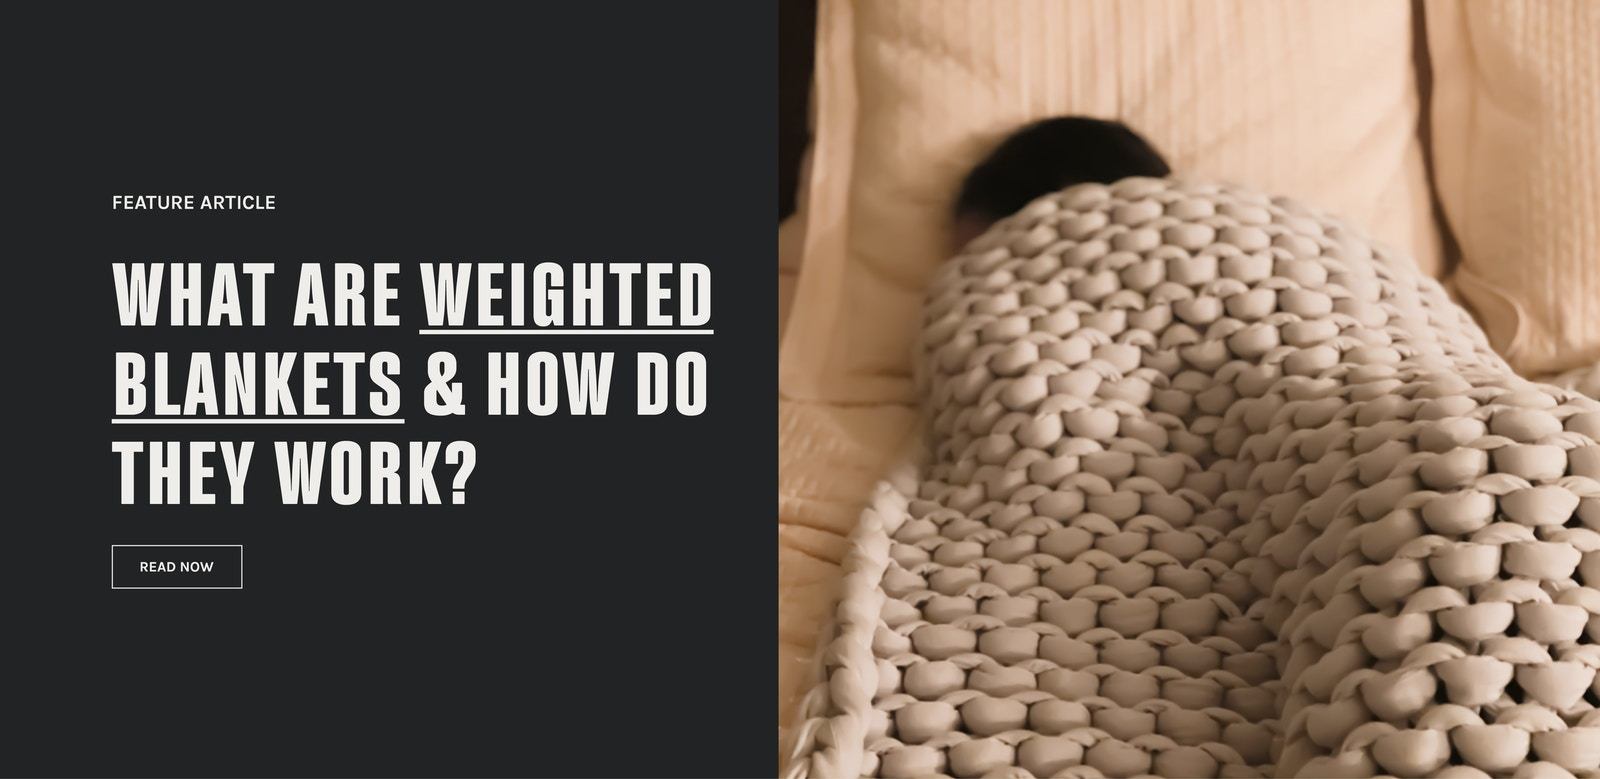 Feature article: What are weighted blankets and do they work?